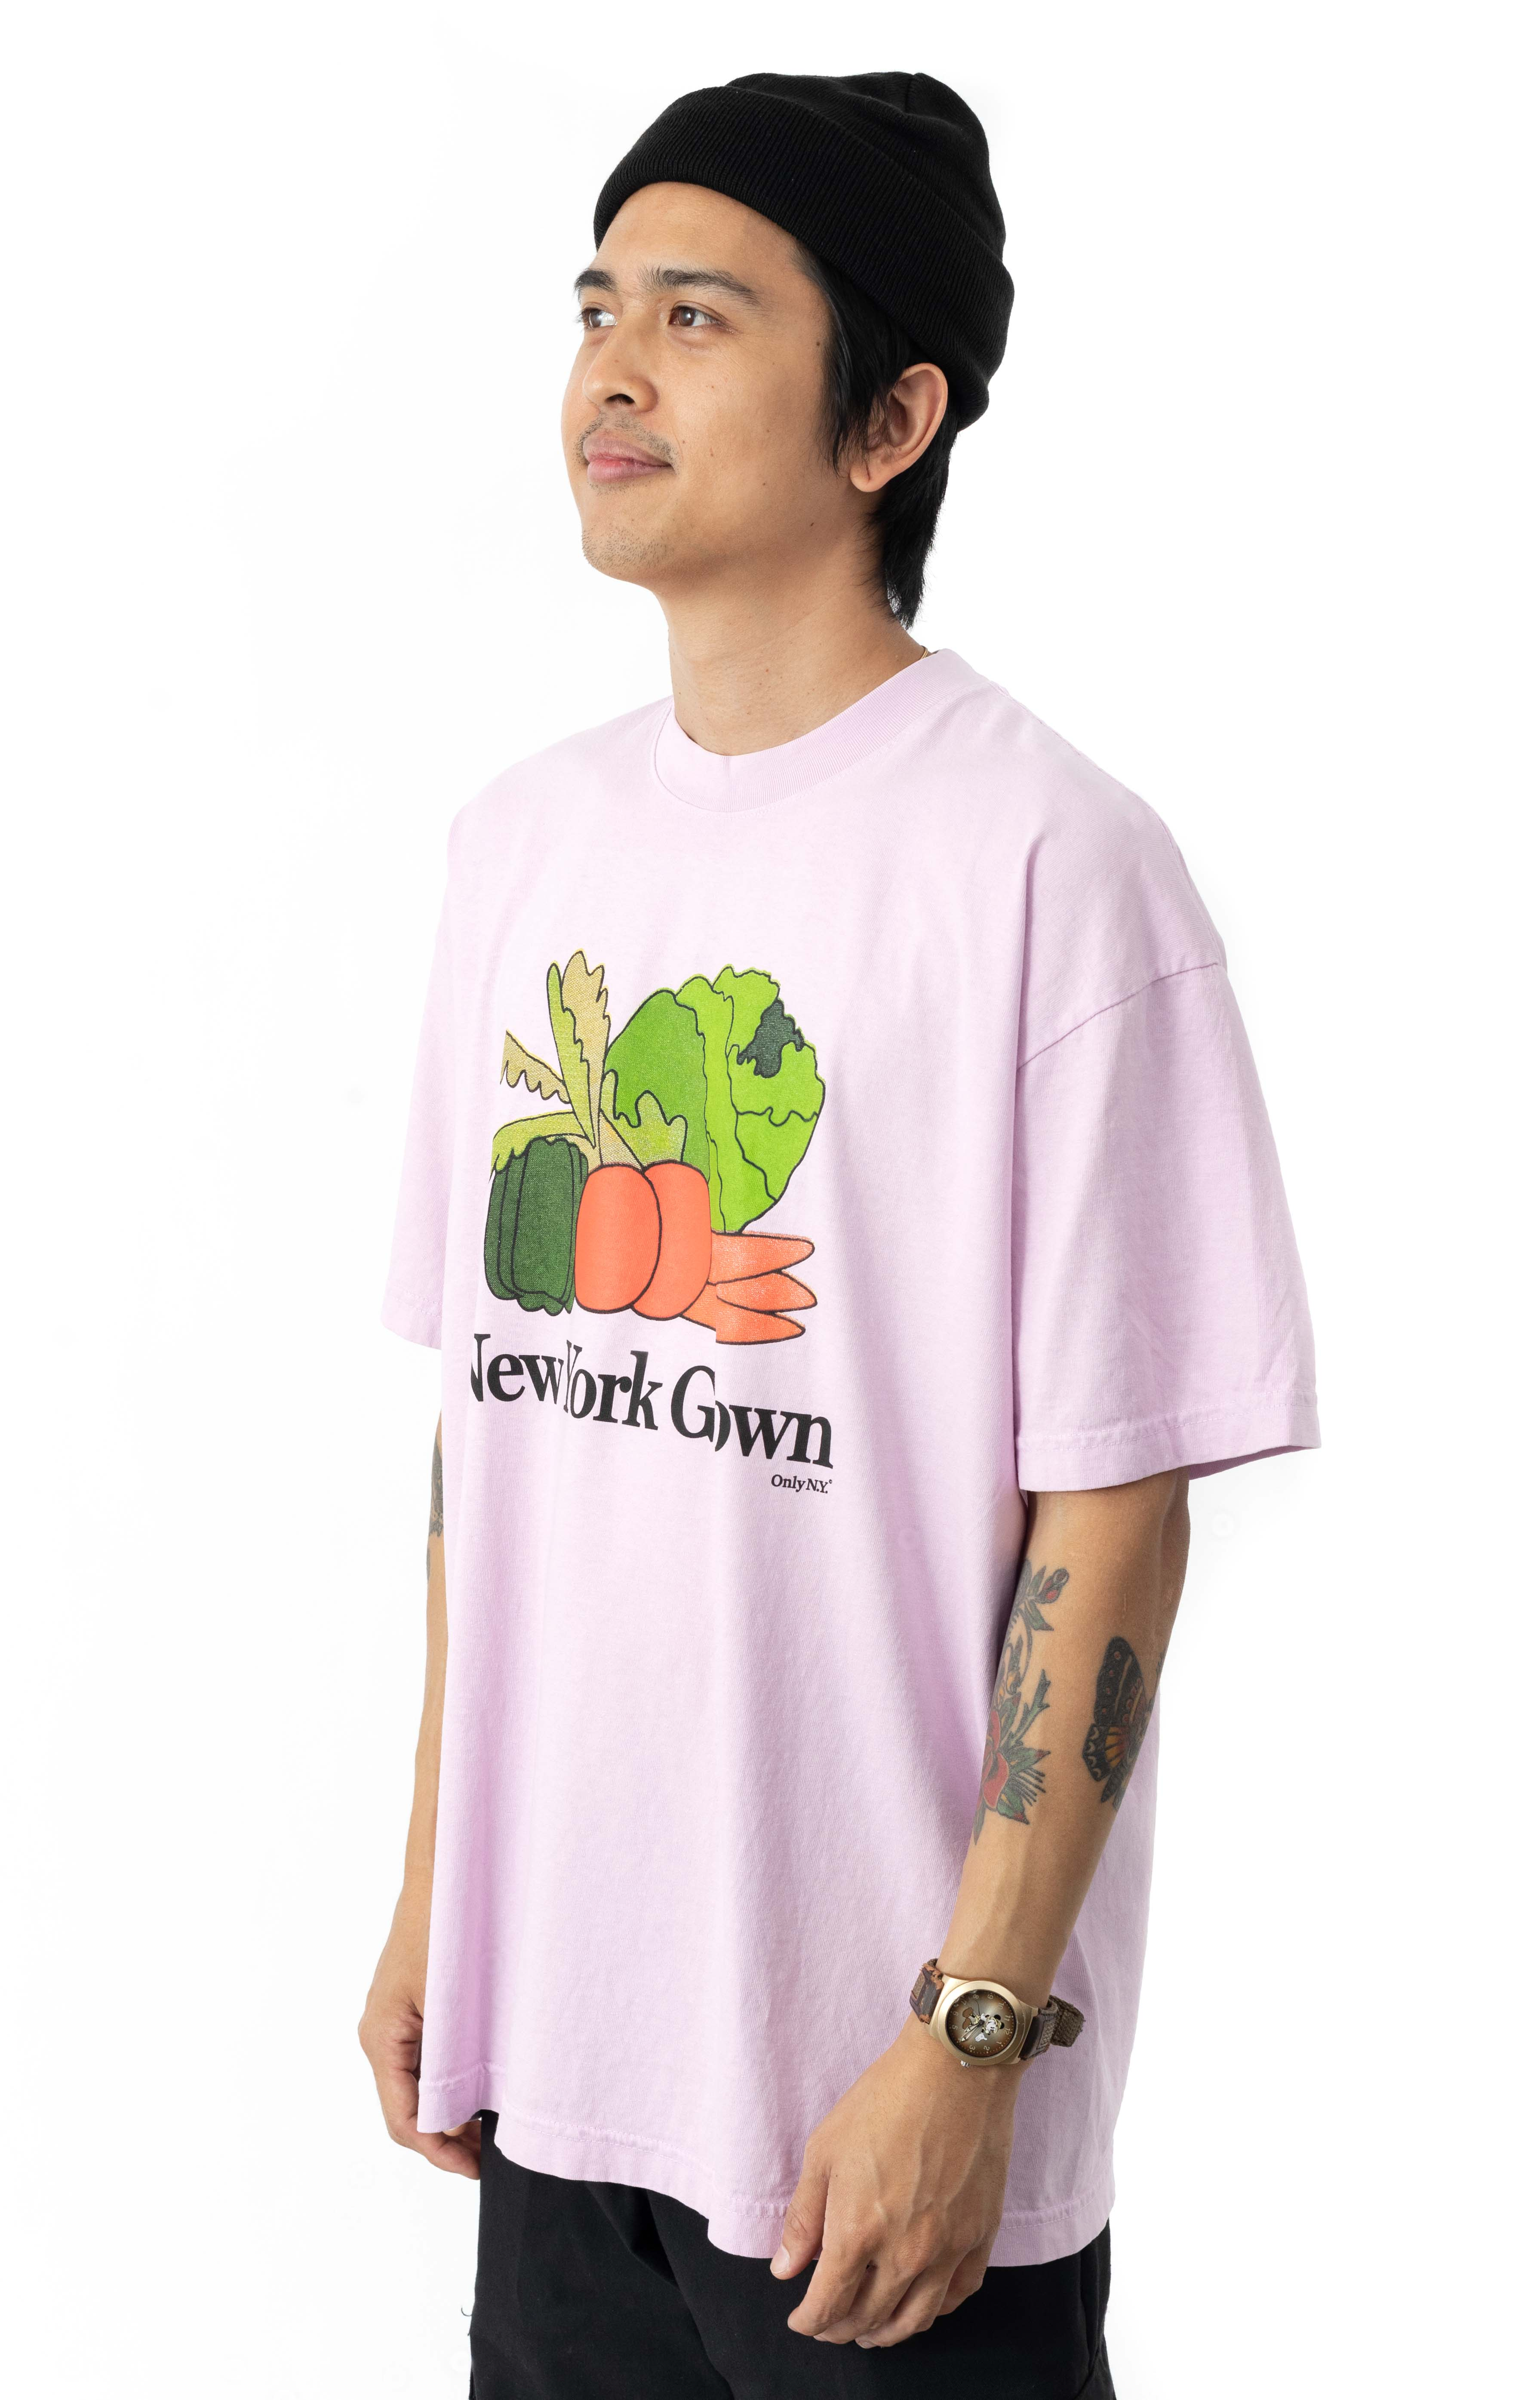 New York Grown T-Shirt - Pink 2